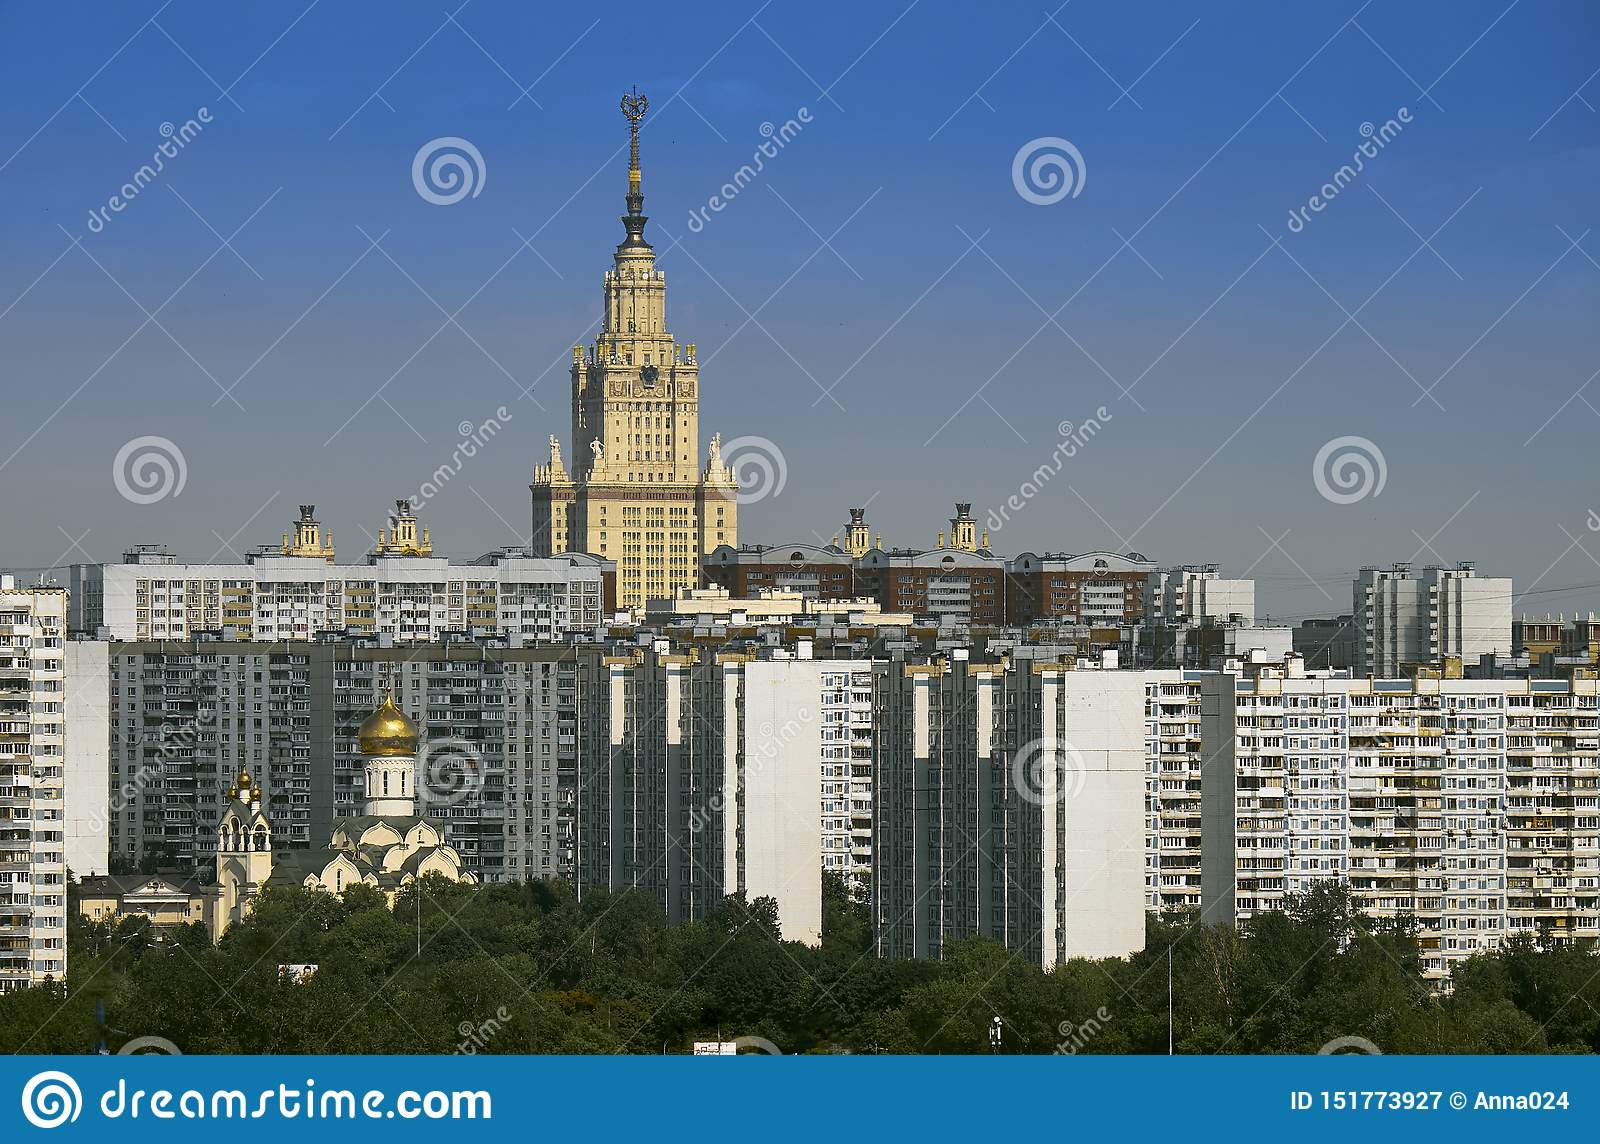 Cityscape in Ramenki district of Moscow.